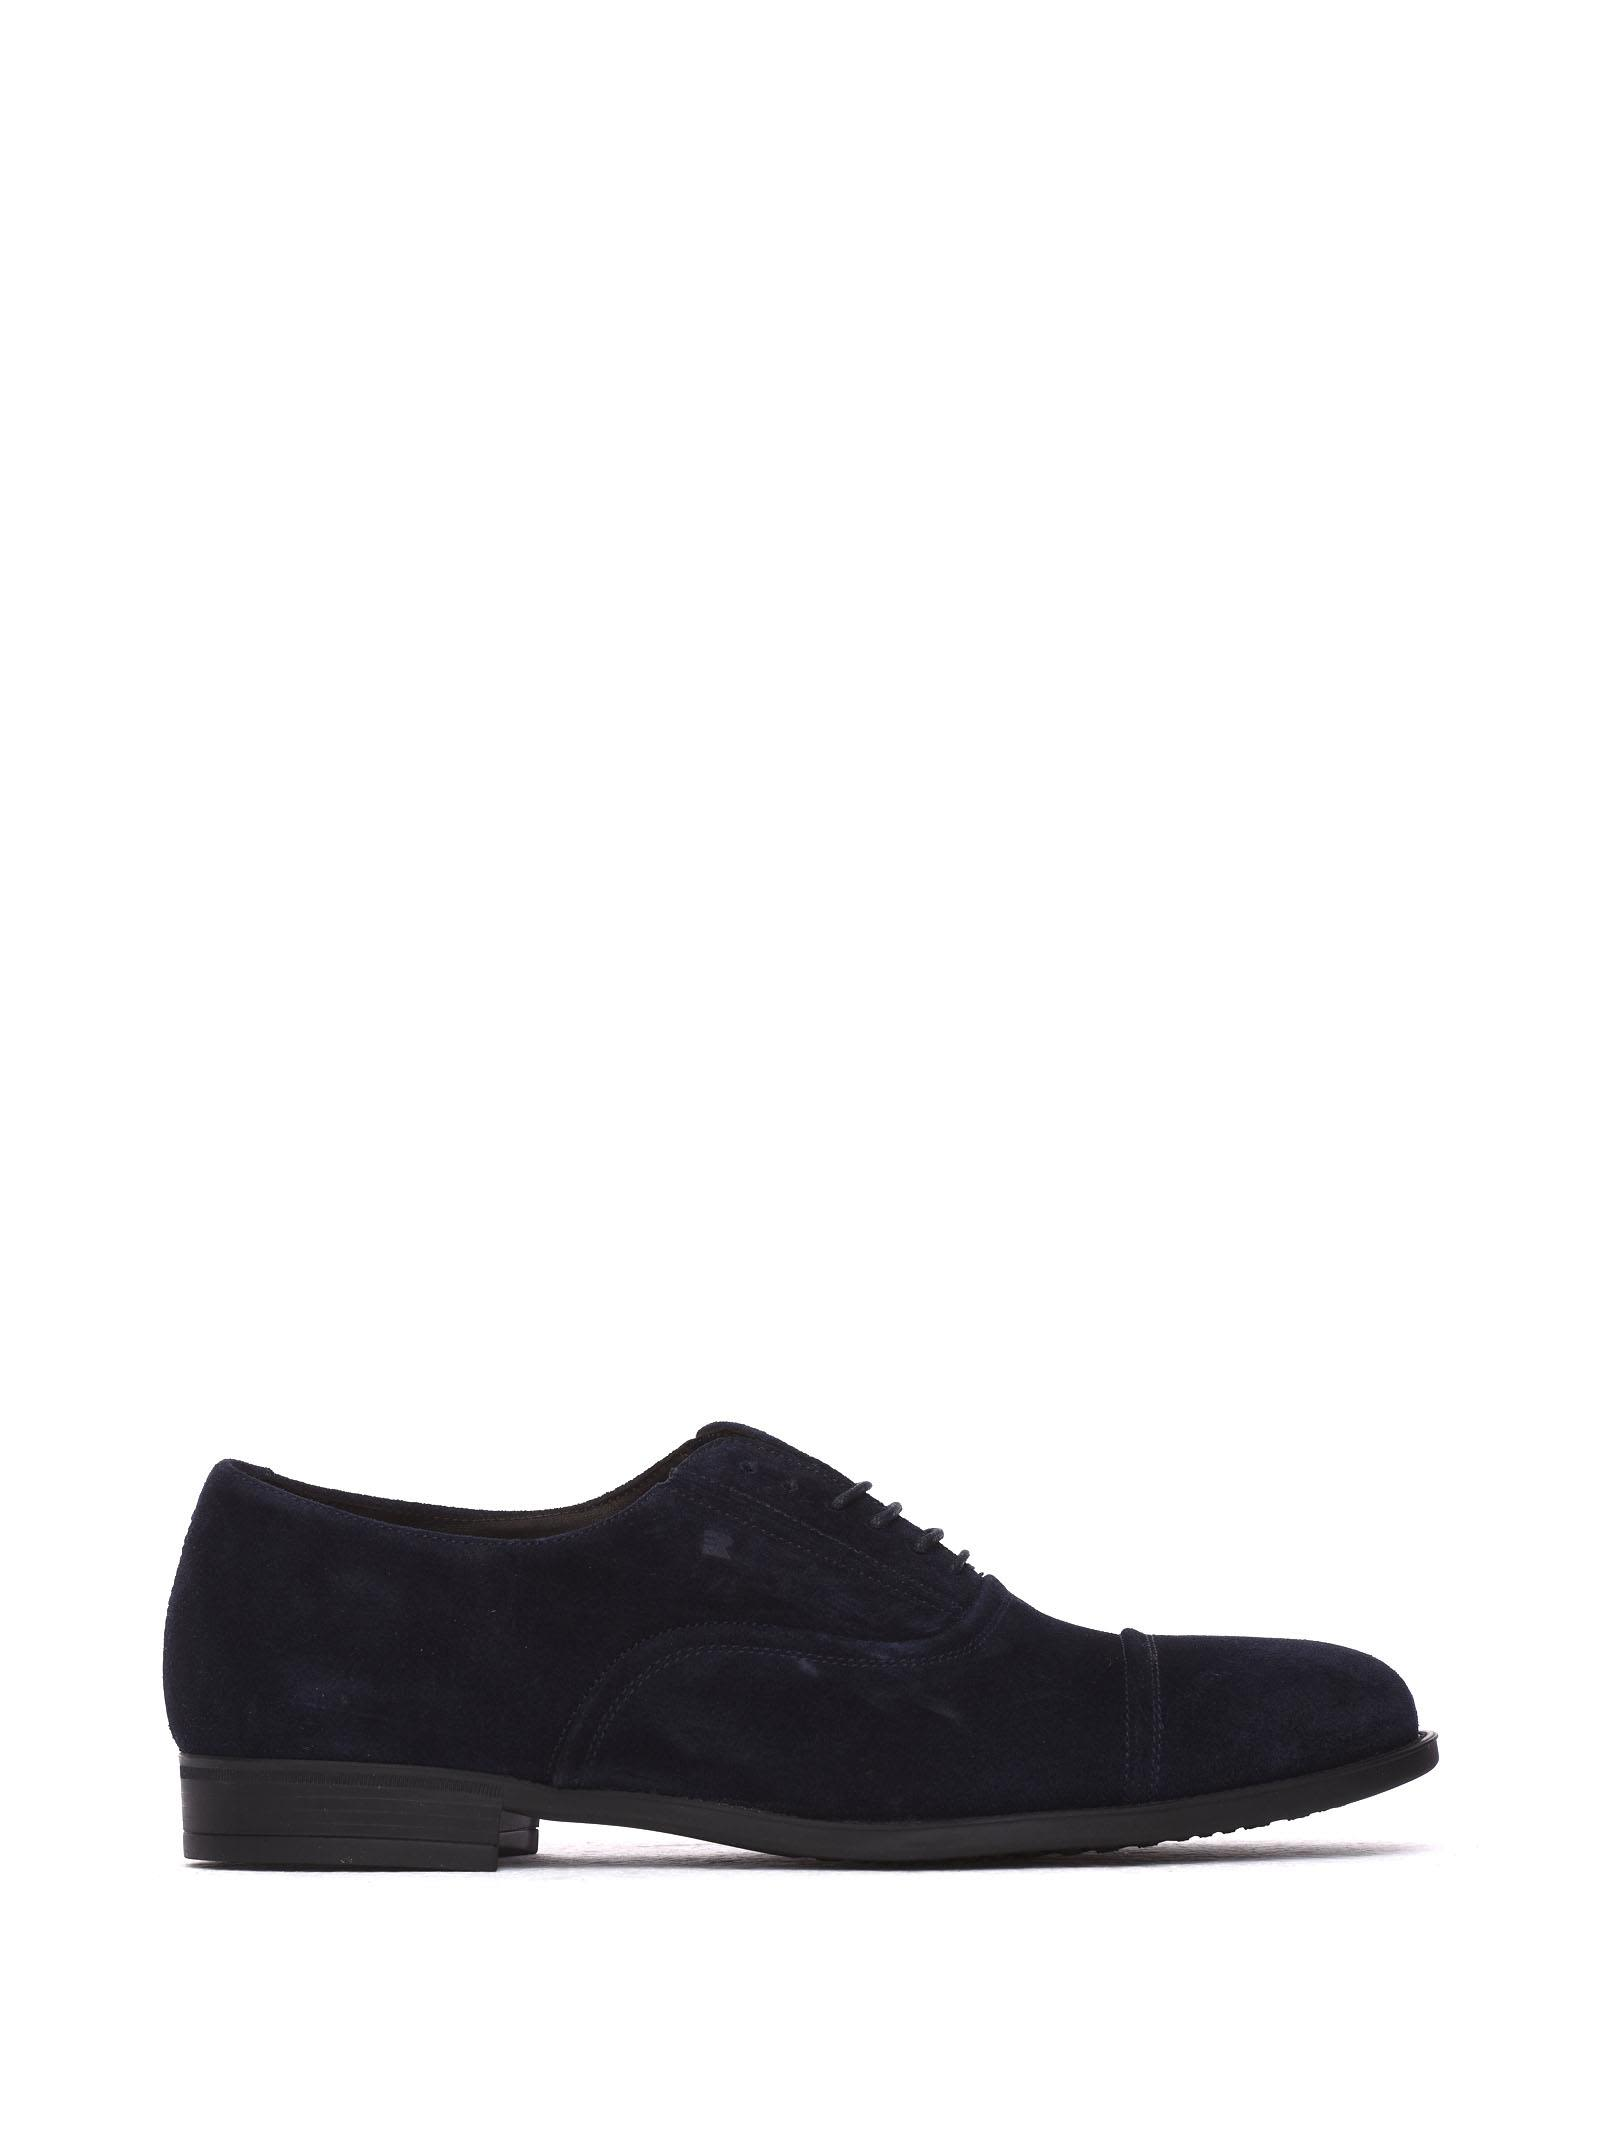 FRATELLI ROSSETTI ONE Lace-Up Shoe In Blue Navy Suede in Marine